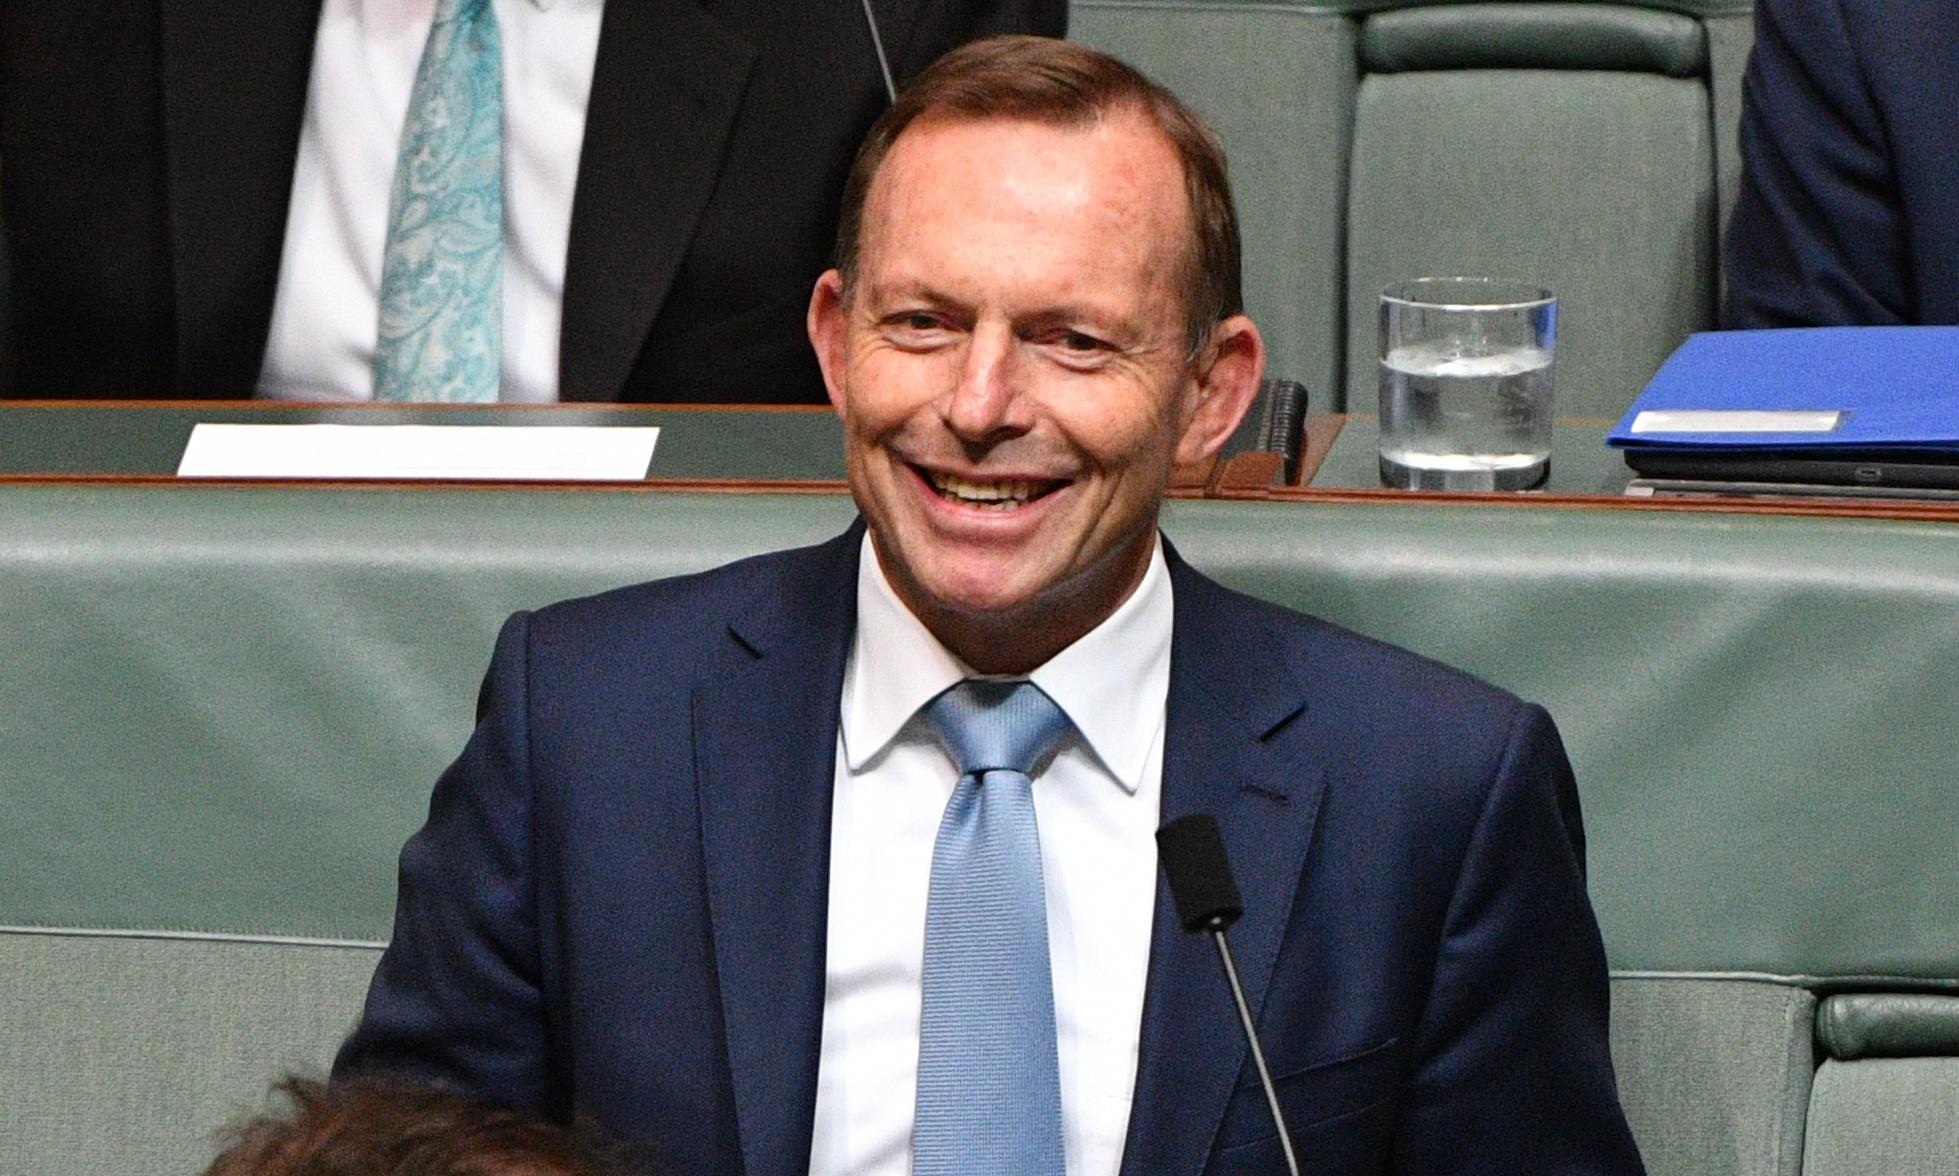 Tony Abbott could lose his seat in conditions which are perfect for independents